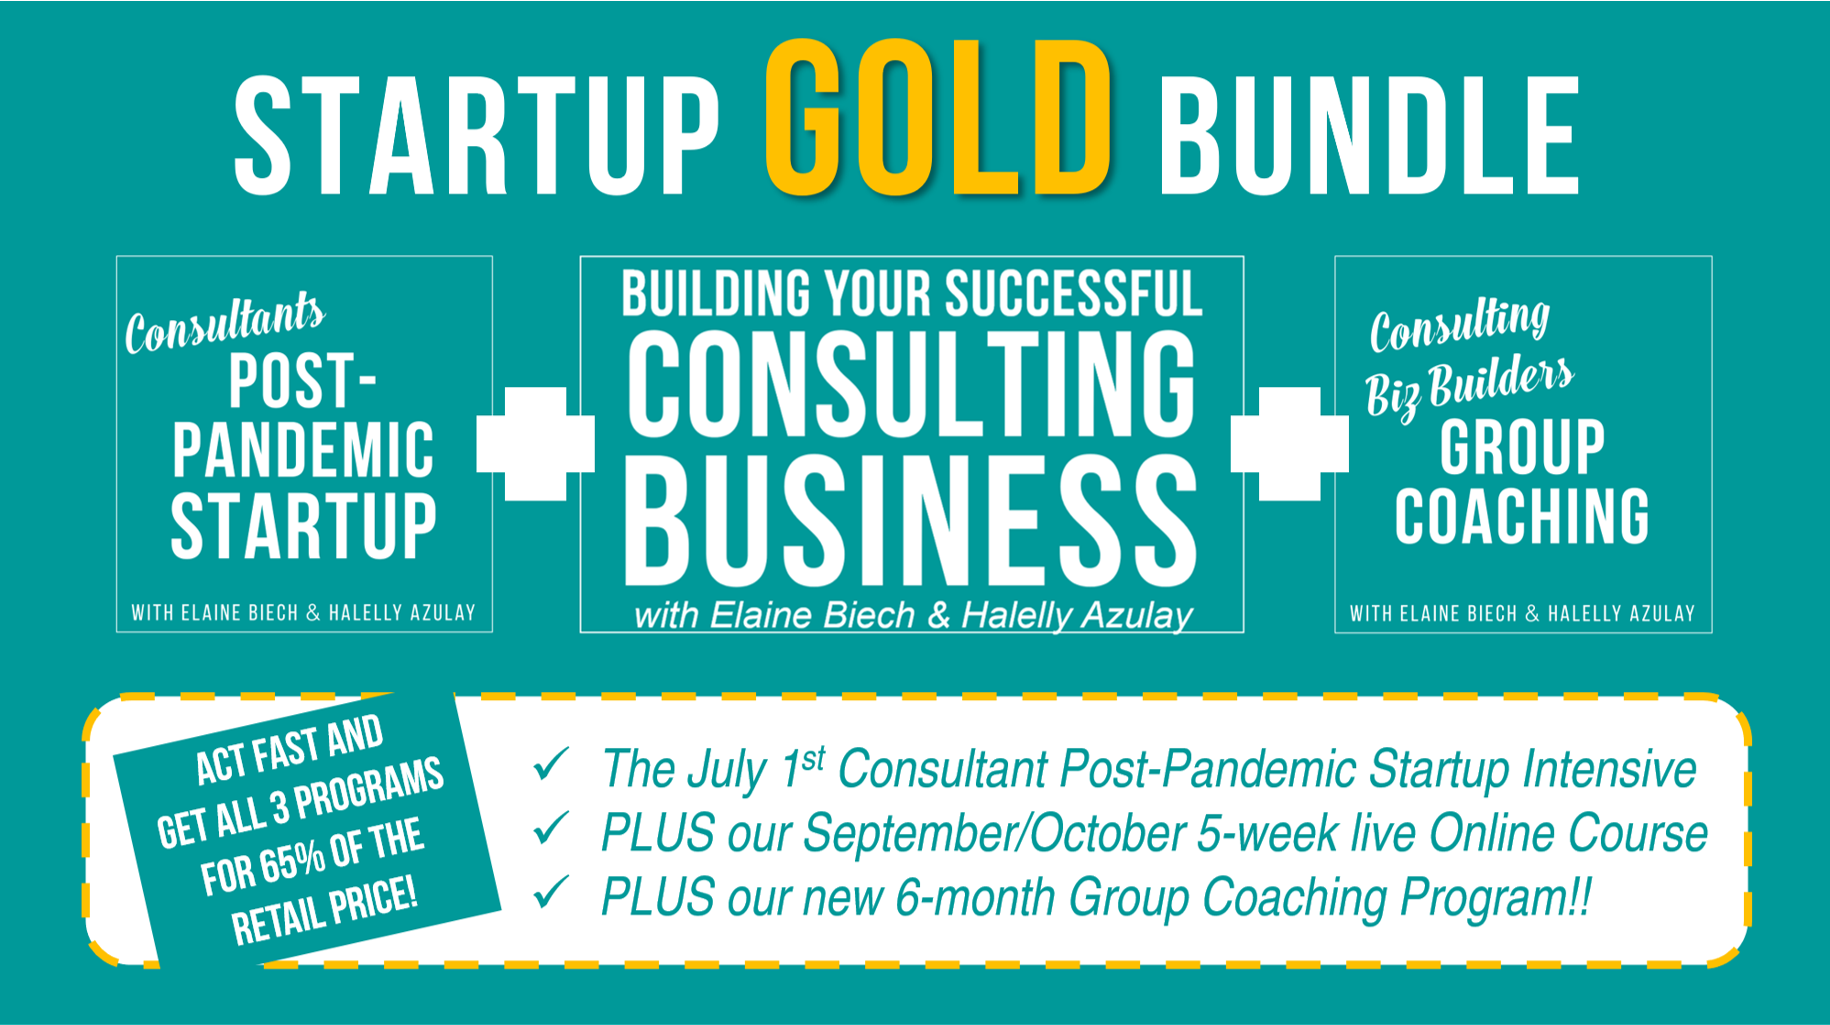 Act fast to get all 3 programs for 65% of the retail price so you can start, build, and grow your consulting business with our full support and guidance for 10 months!